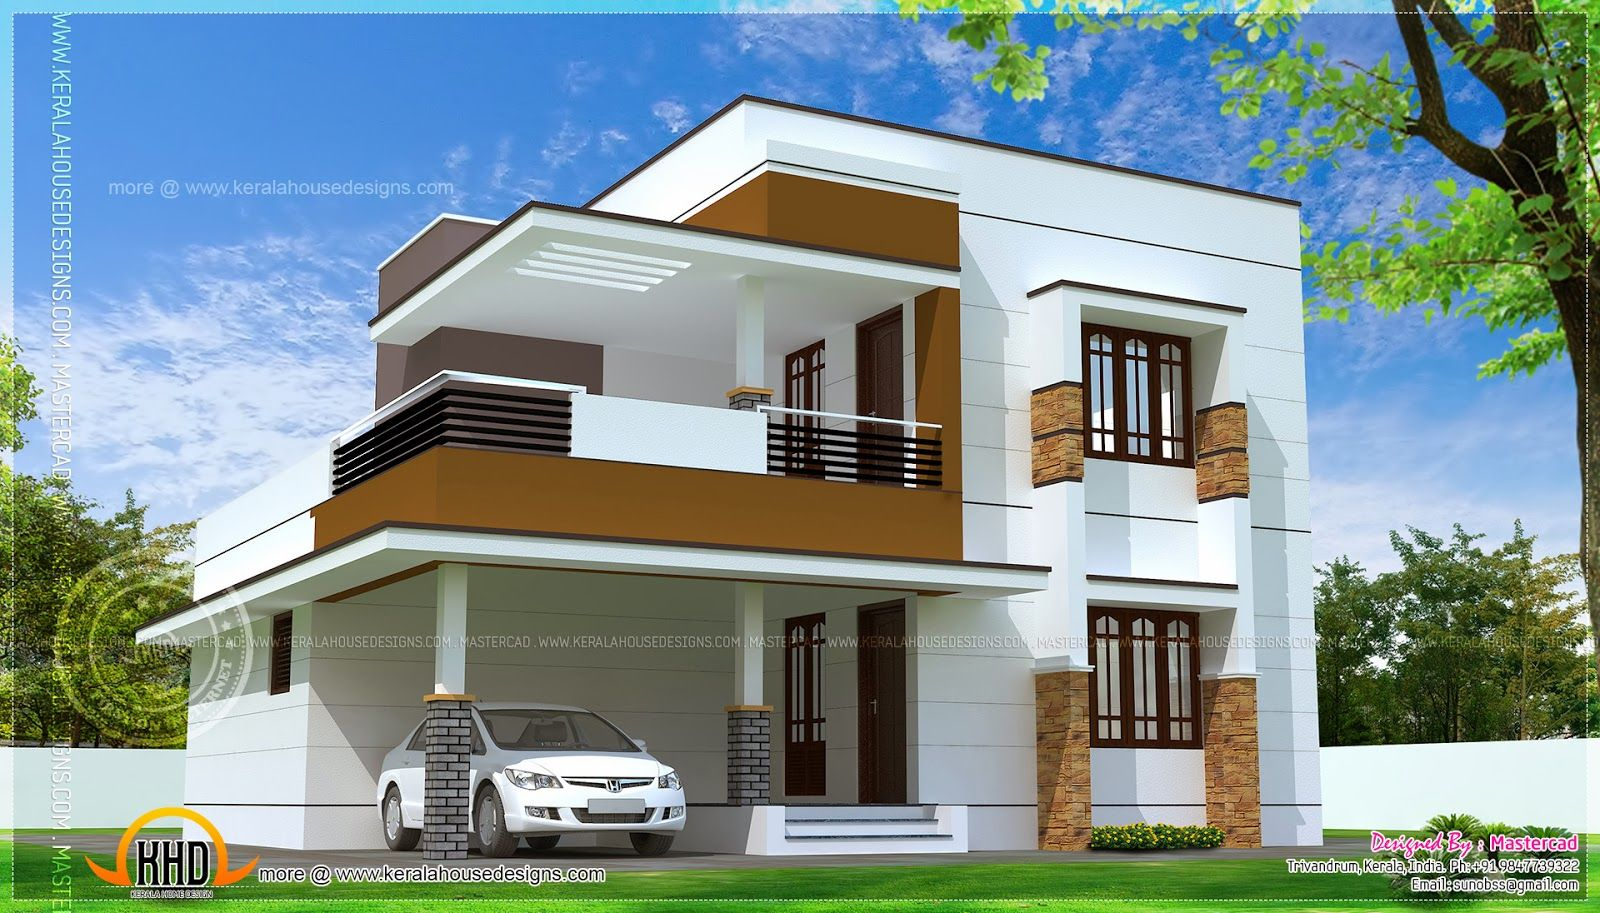 modern house plans erven 500sq m simple modern home design in 1817 square feet - New Home Designs